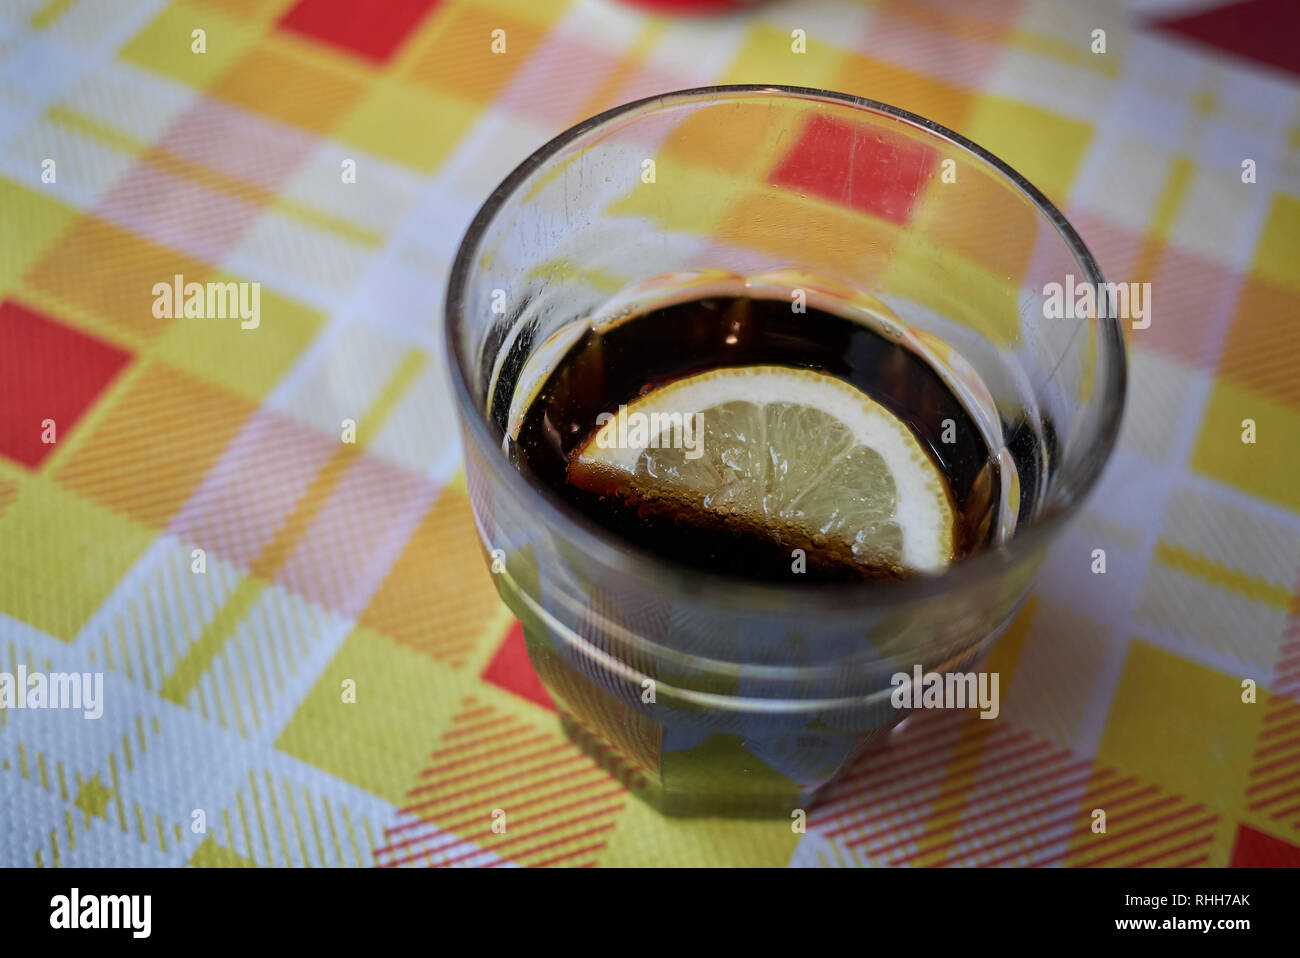 Coke - Stock Image